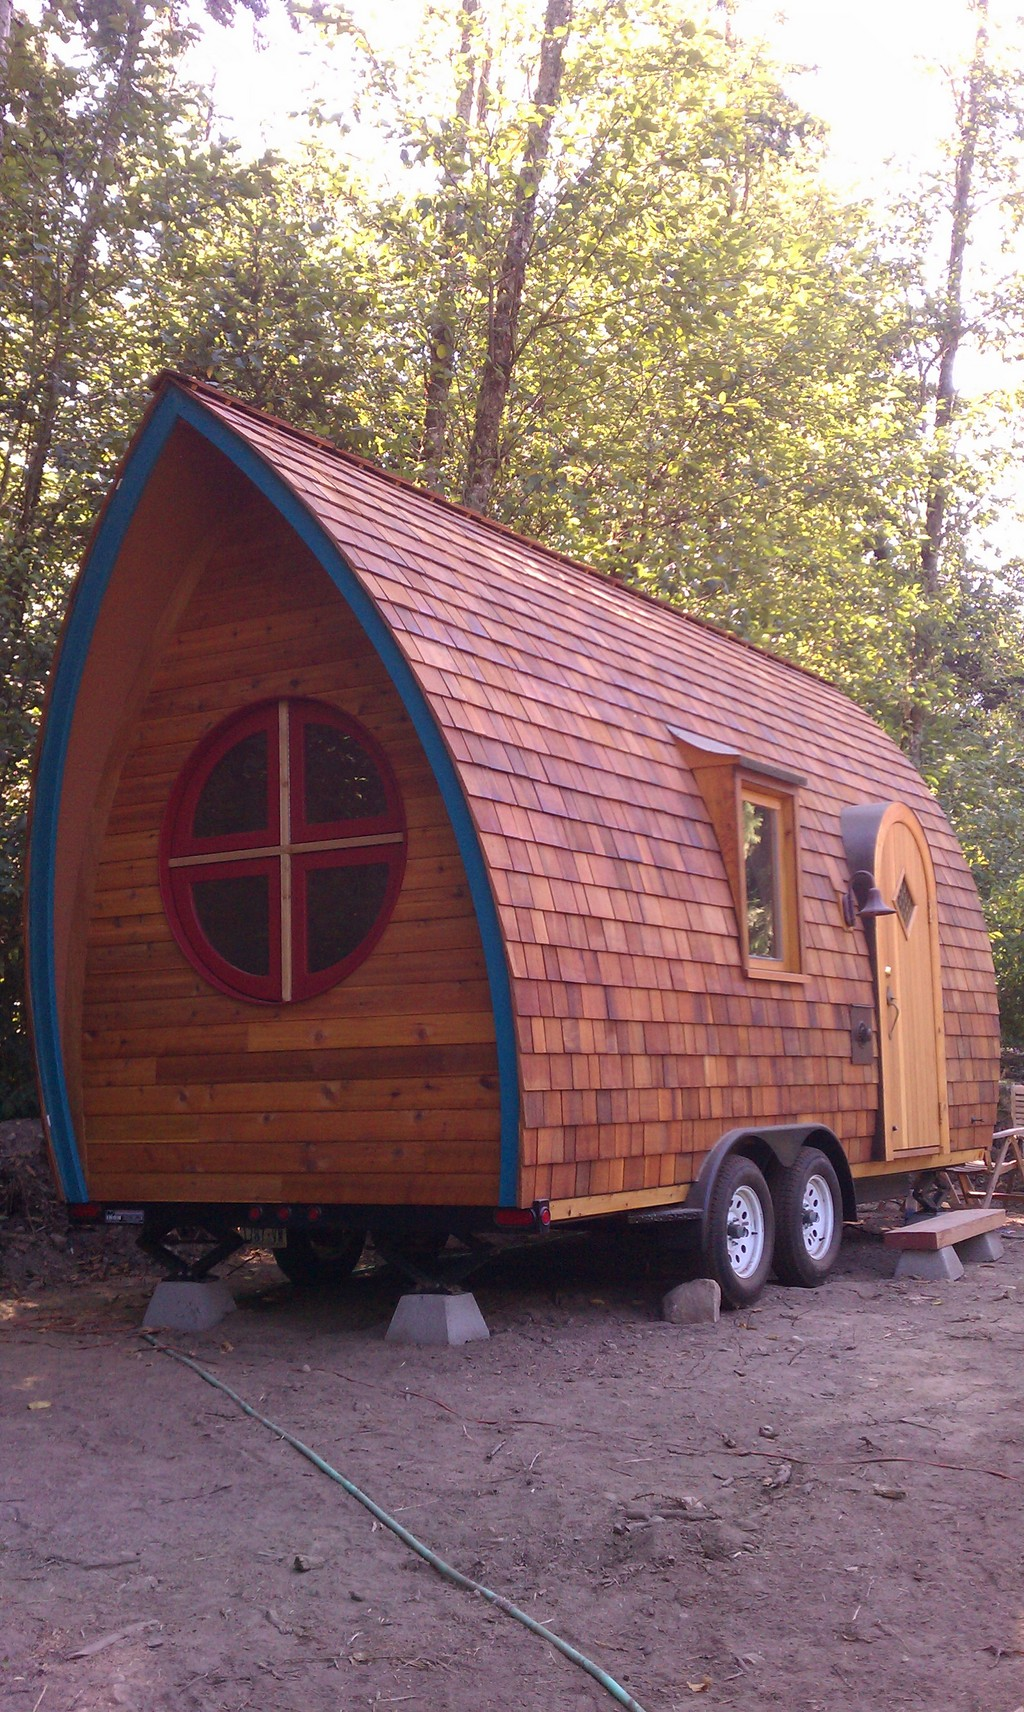 My 7 Favorite Tiny Houses Which Do You Like Best?